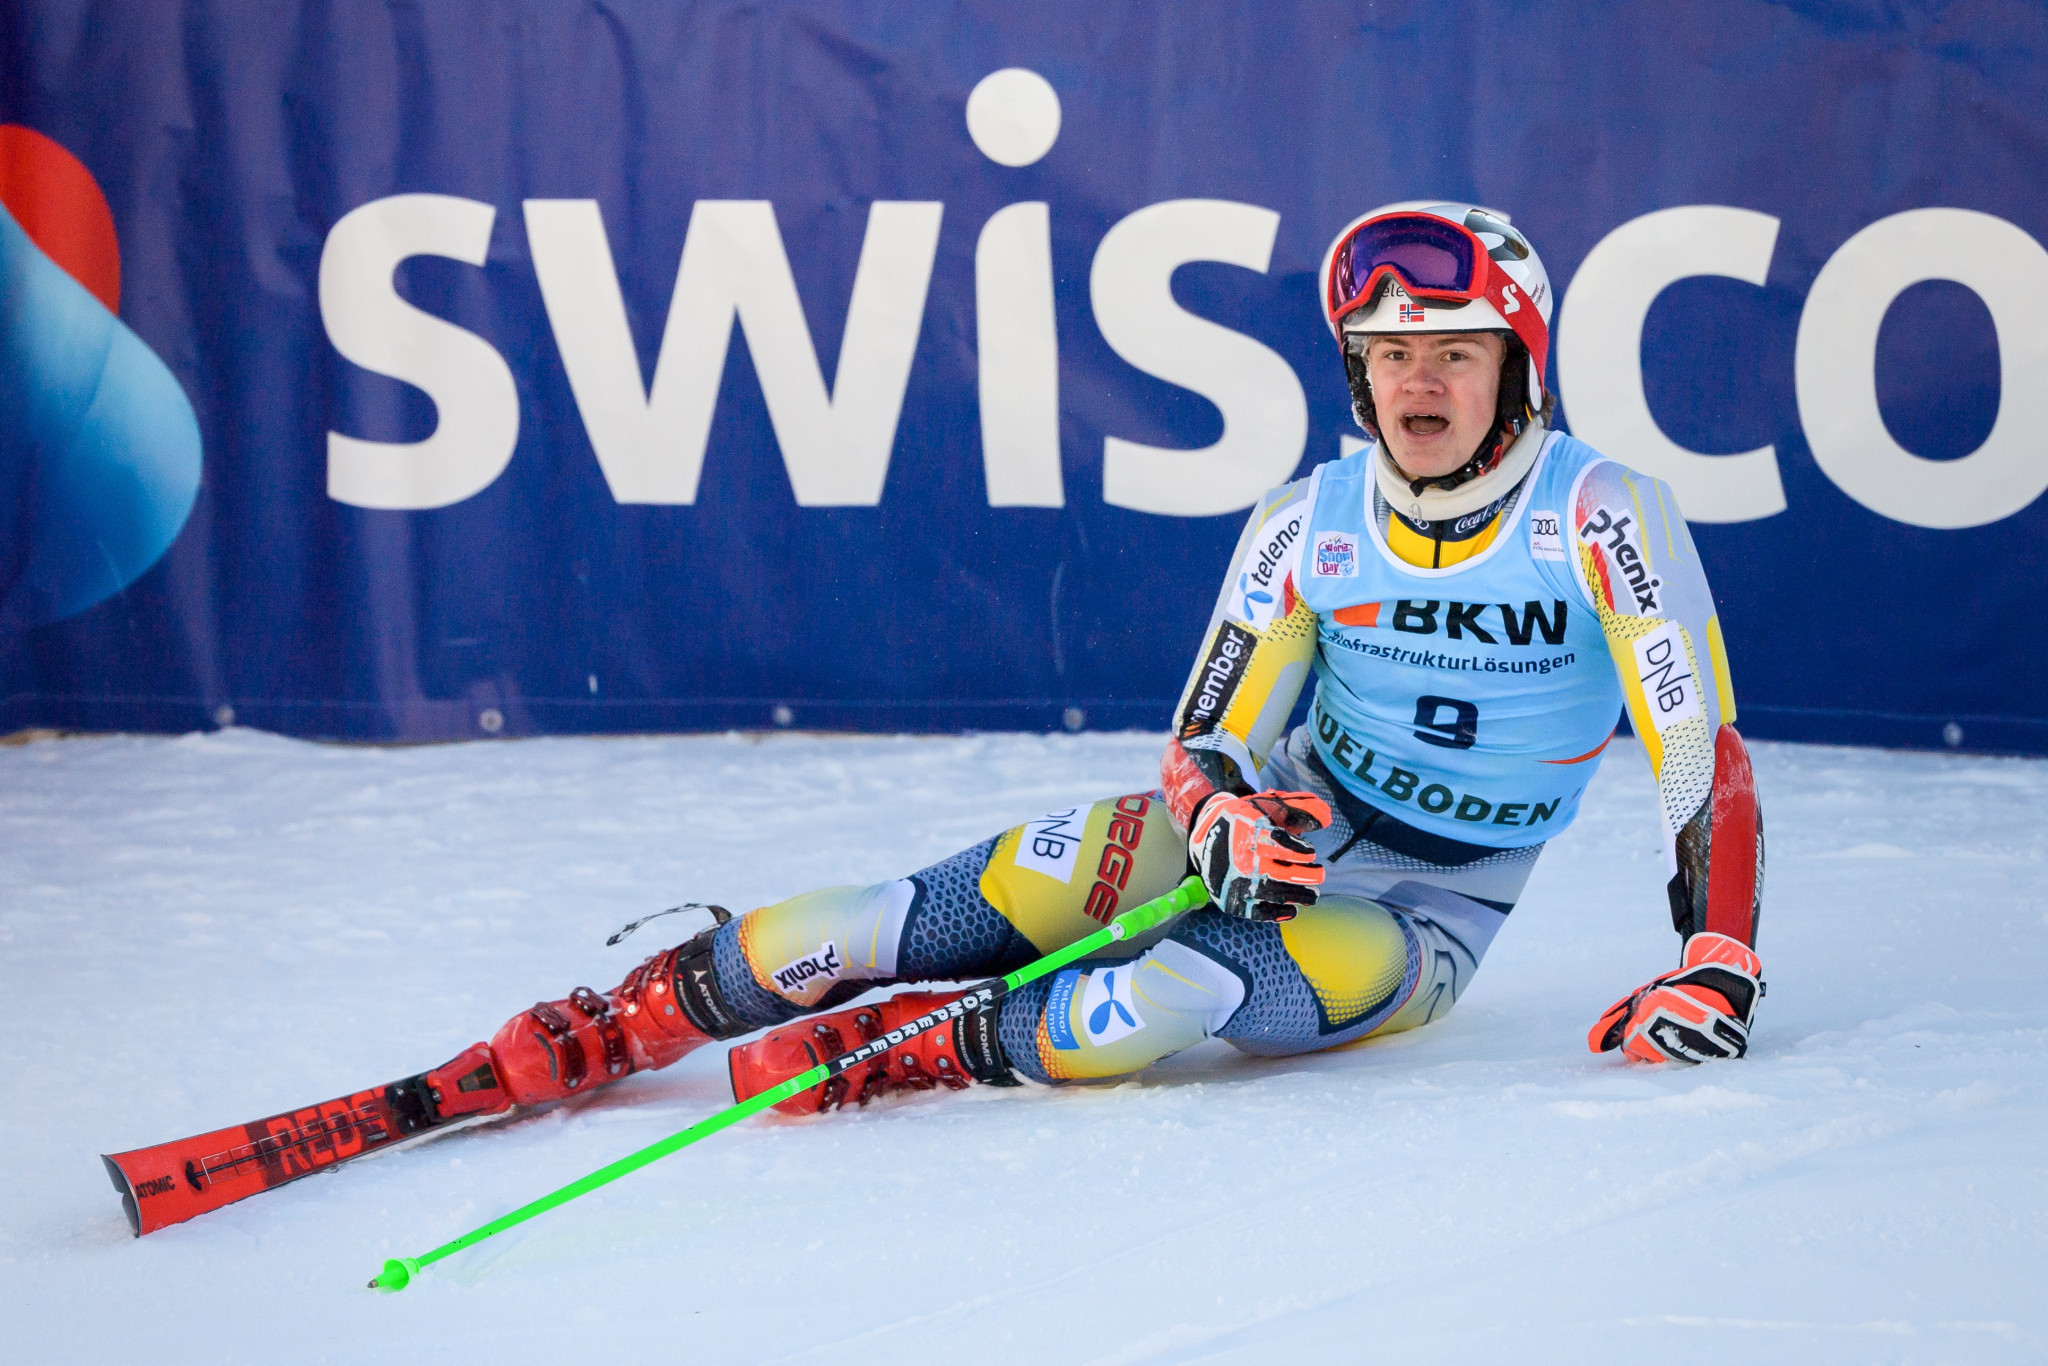 Braathen to miss remainder of FIS Alpine World Cup season with knee injury